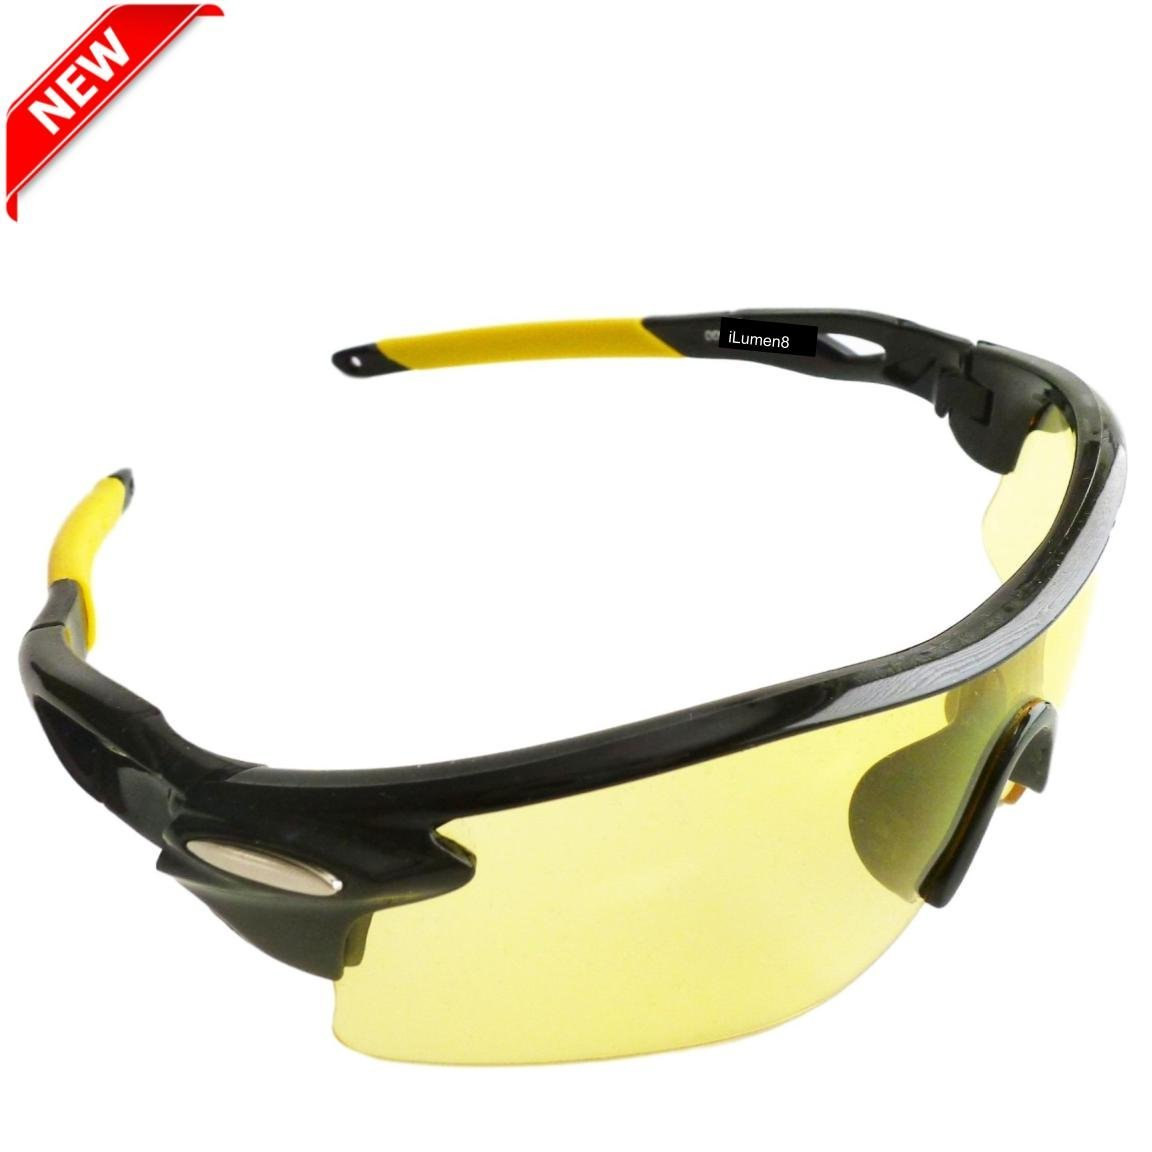 1c3b1f4e6e Get Quotations · BEST Shooting Glasses UV Blacklight Flashlight Yellow  Safety Eye protection by iLumen8. See Dog Cat